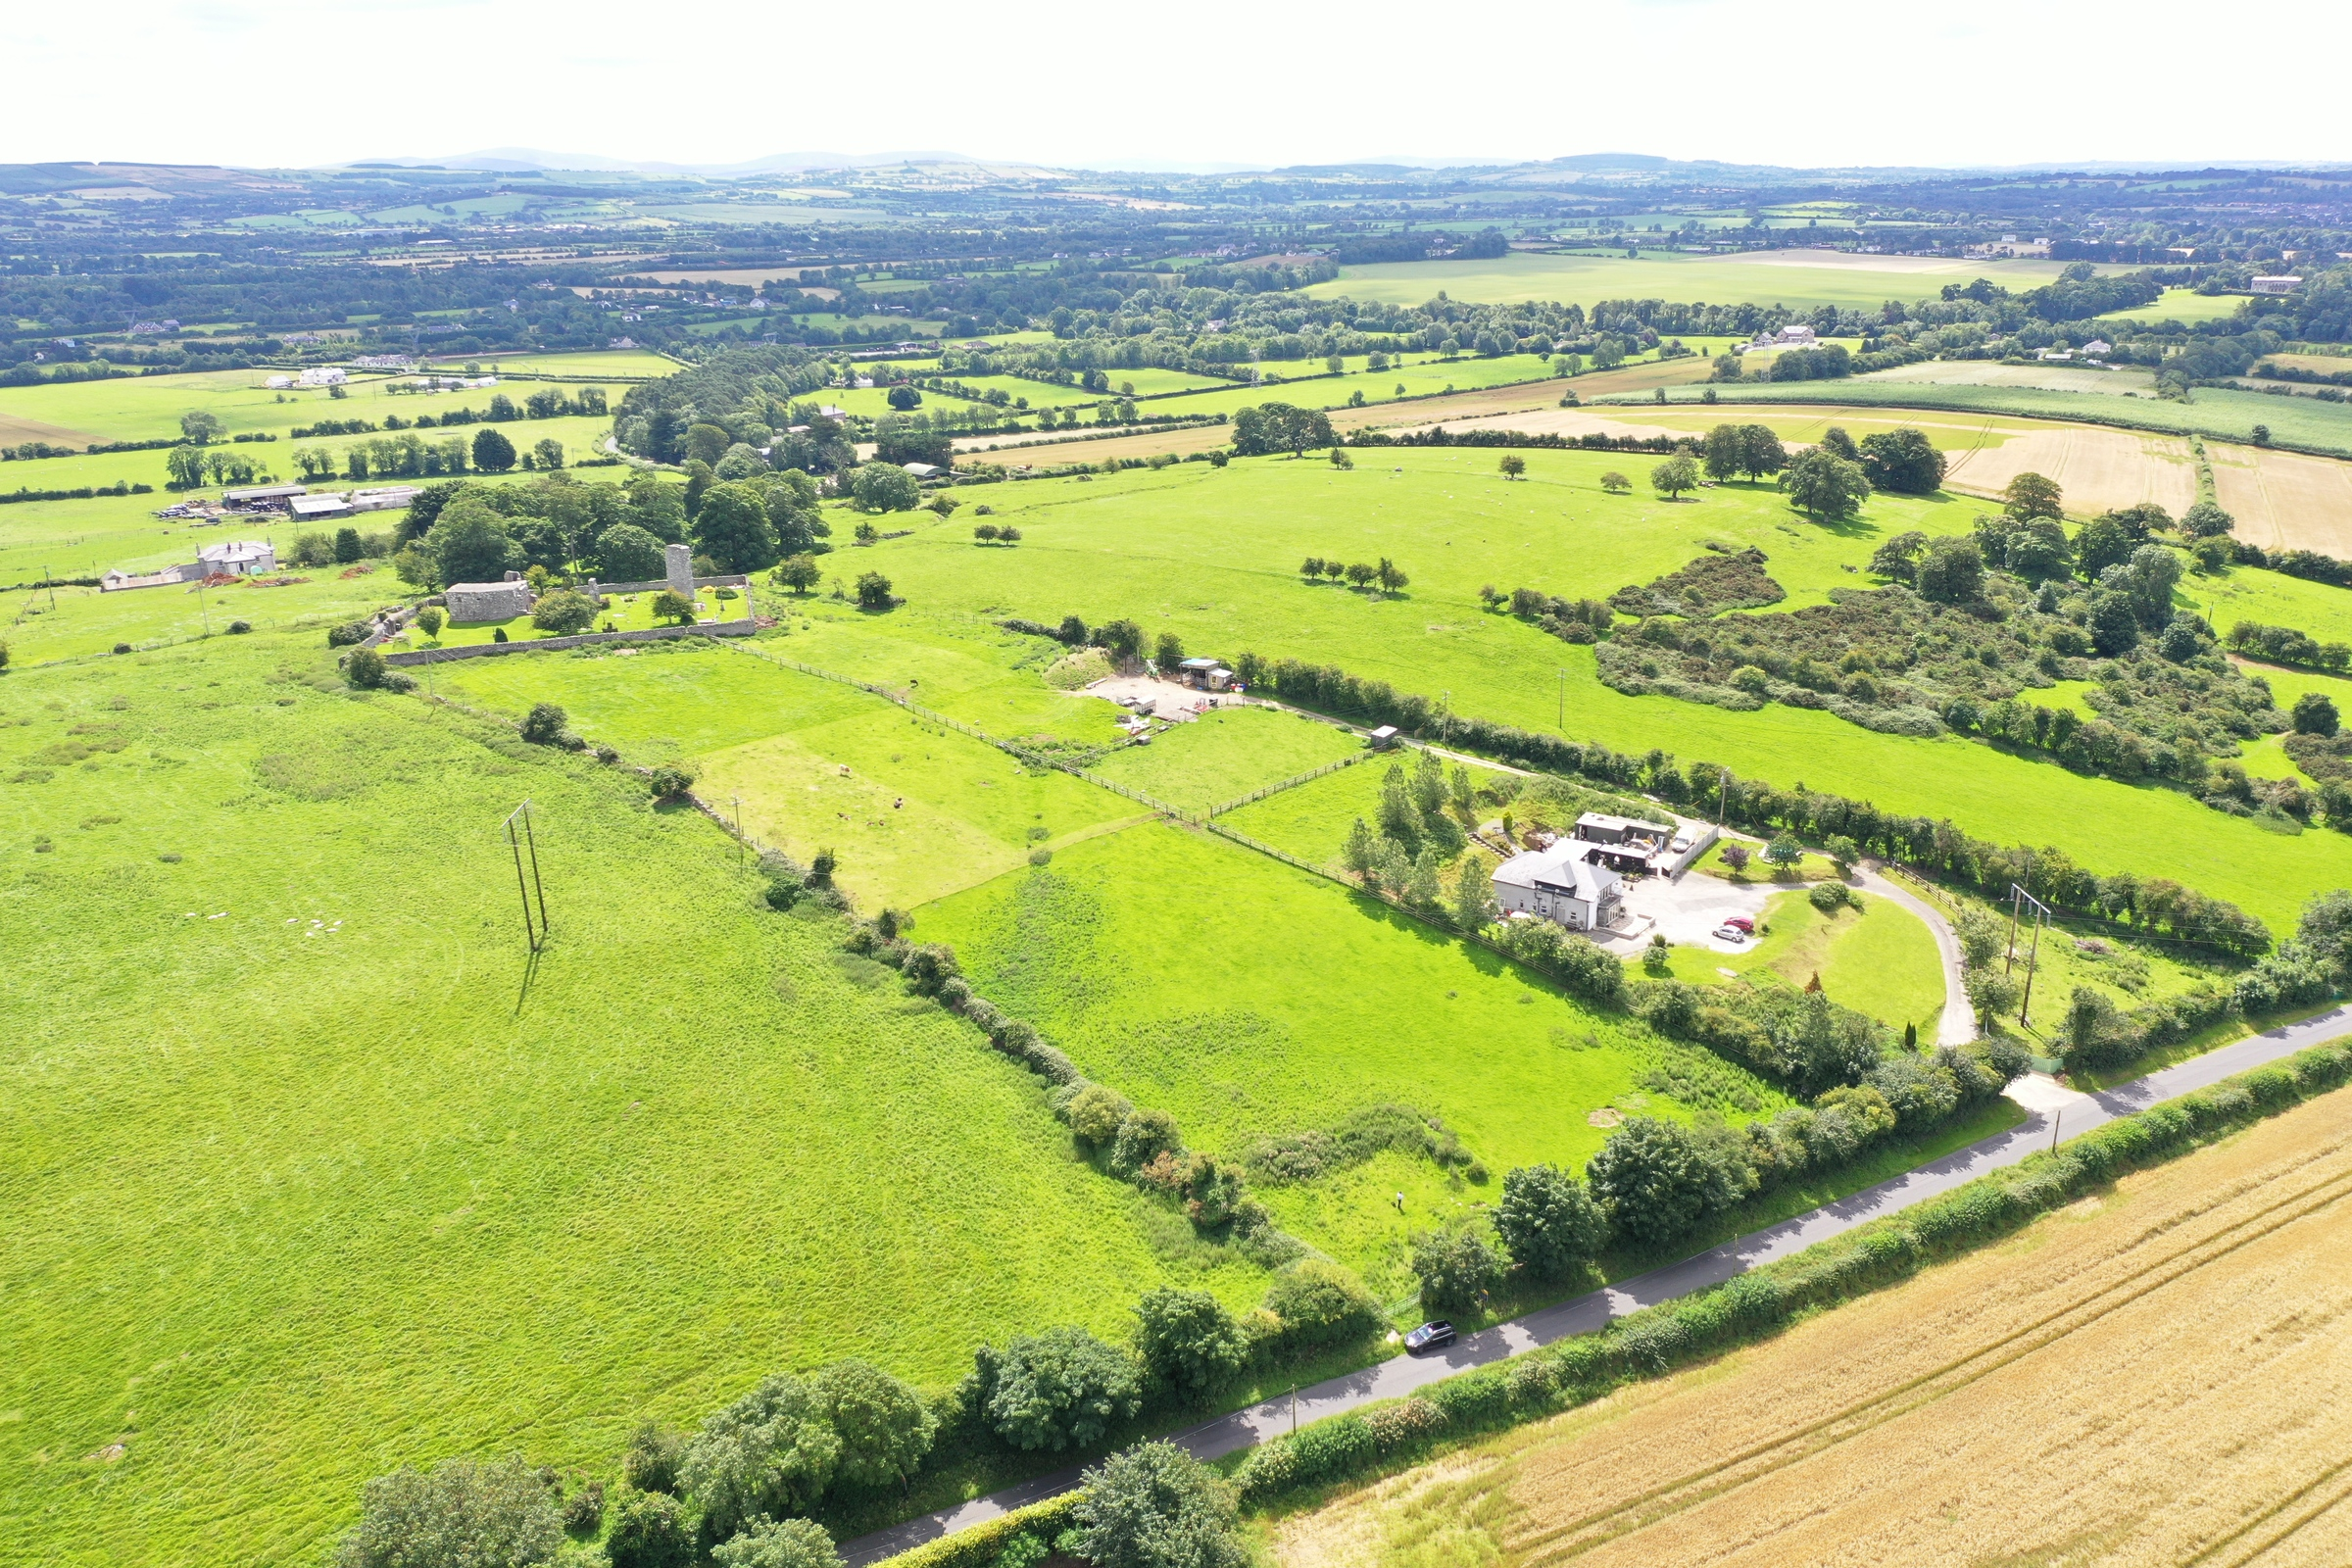 Land C. 3 Acres / 1.2 Hectares, Boston, Straffan, Co. Kildare